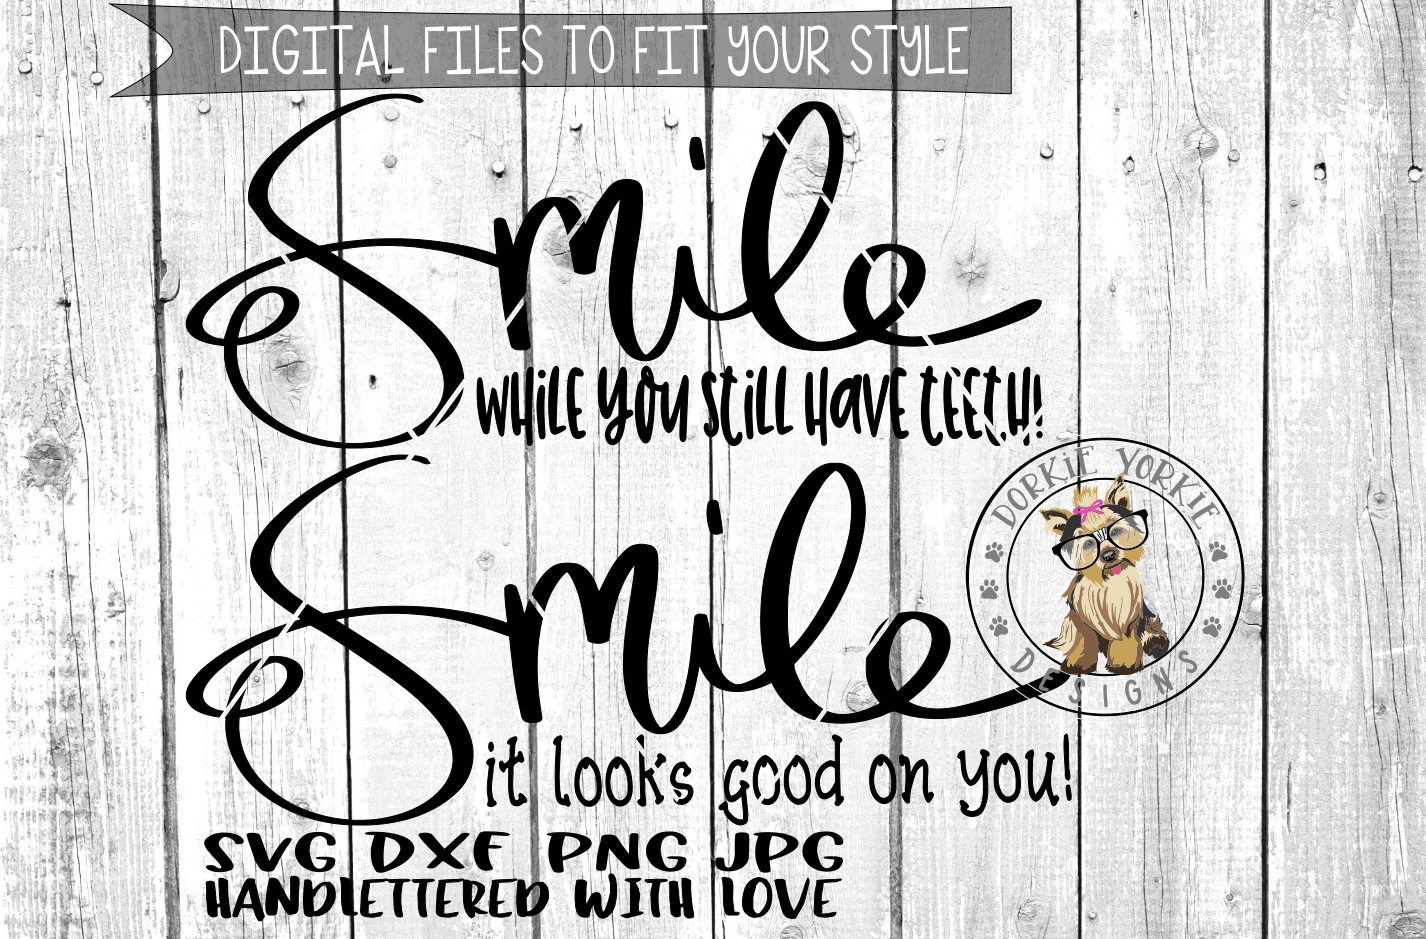 Sweet & Salty Collection - Smile  - Hand lettered  - SVG cut file example image 1